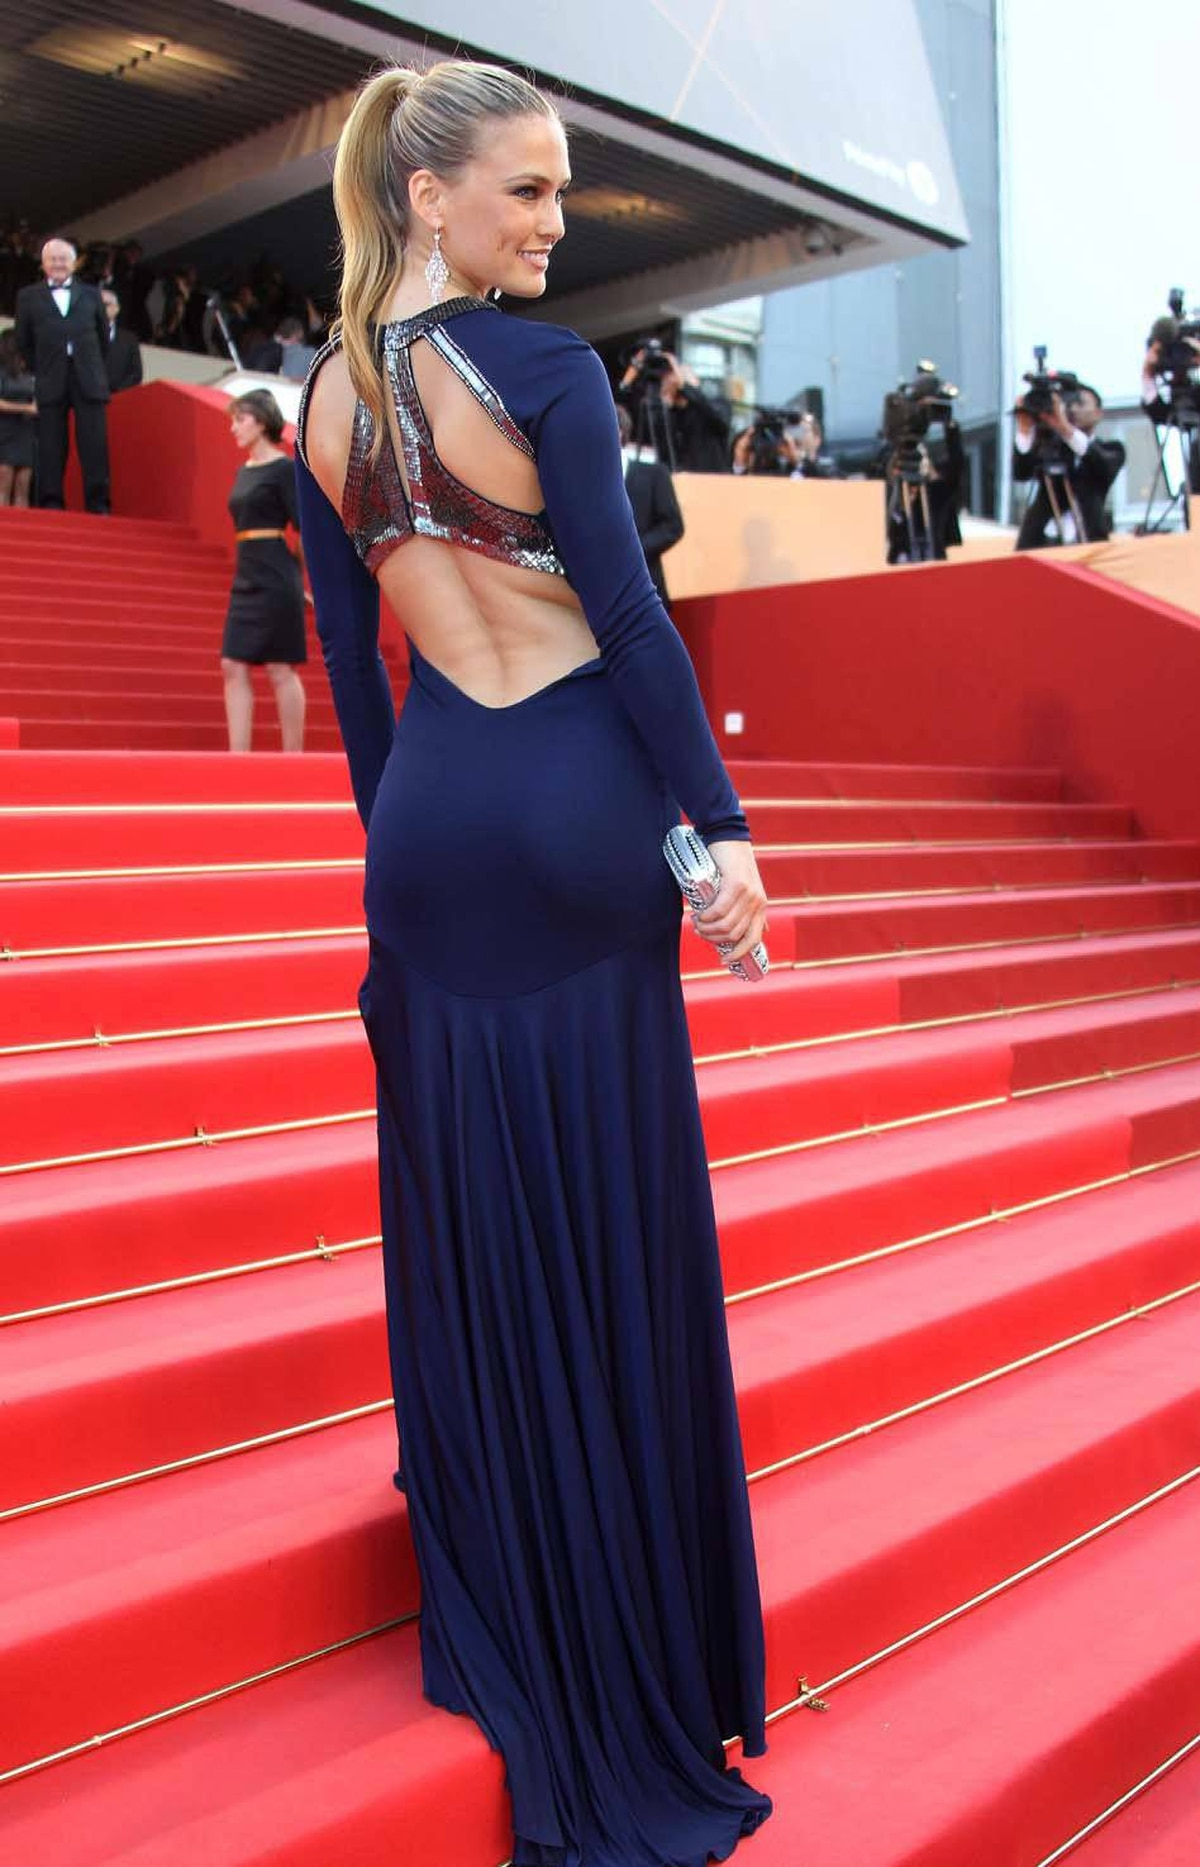 """Israeli model Bar Refaeli at the premiere of """"The Beaver"""" at the Cannes Film Festival on Tuesday."""